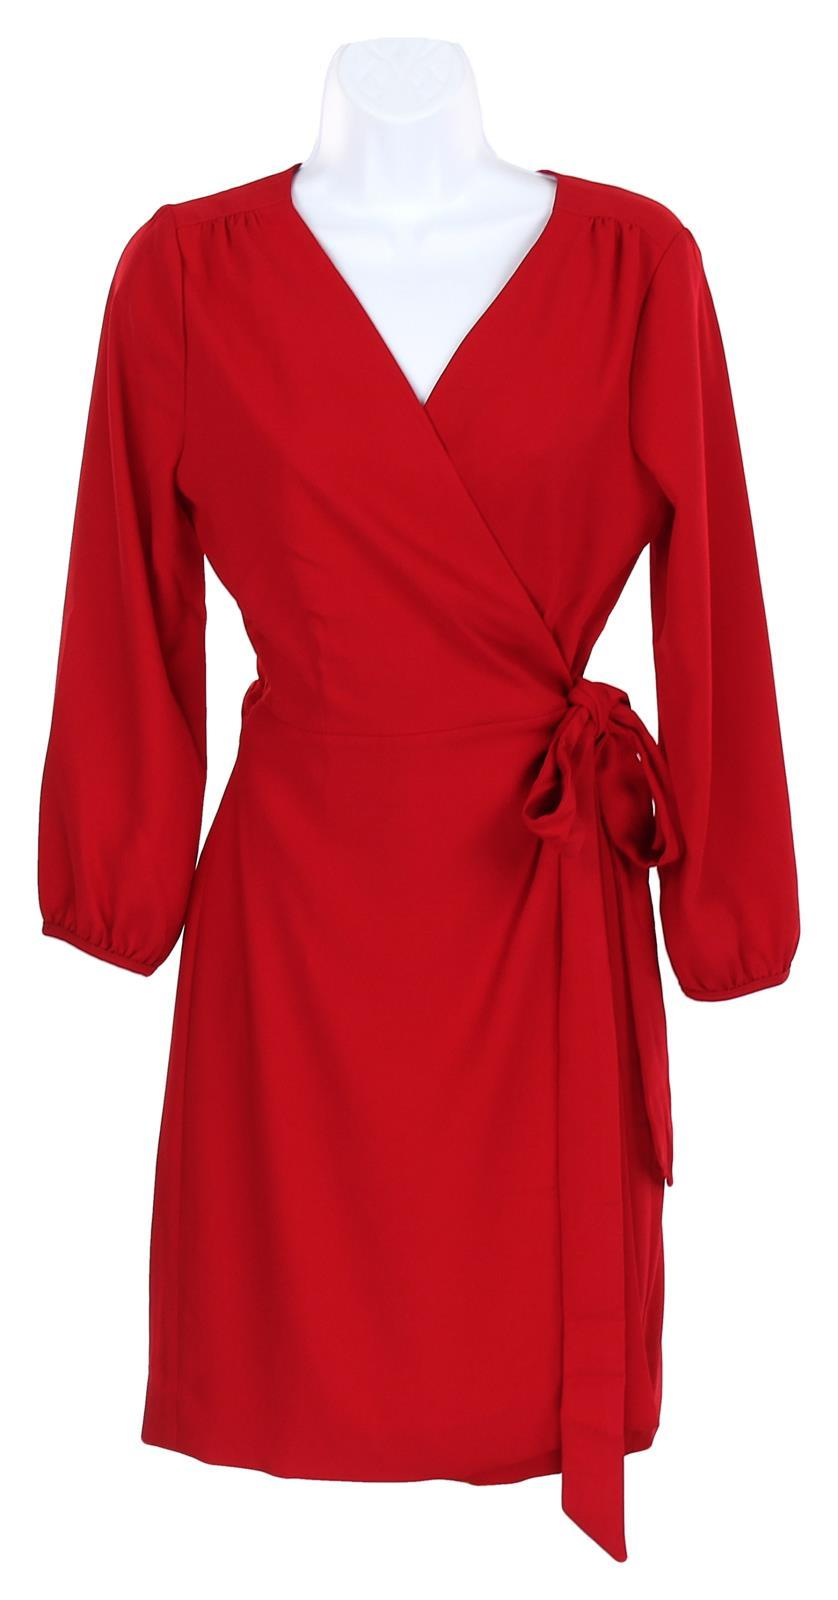 Primary image for J Crew Women's Wrap Dress in 365 Crepe Wear to Work Career Red Sz 14 H6292